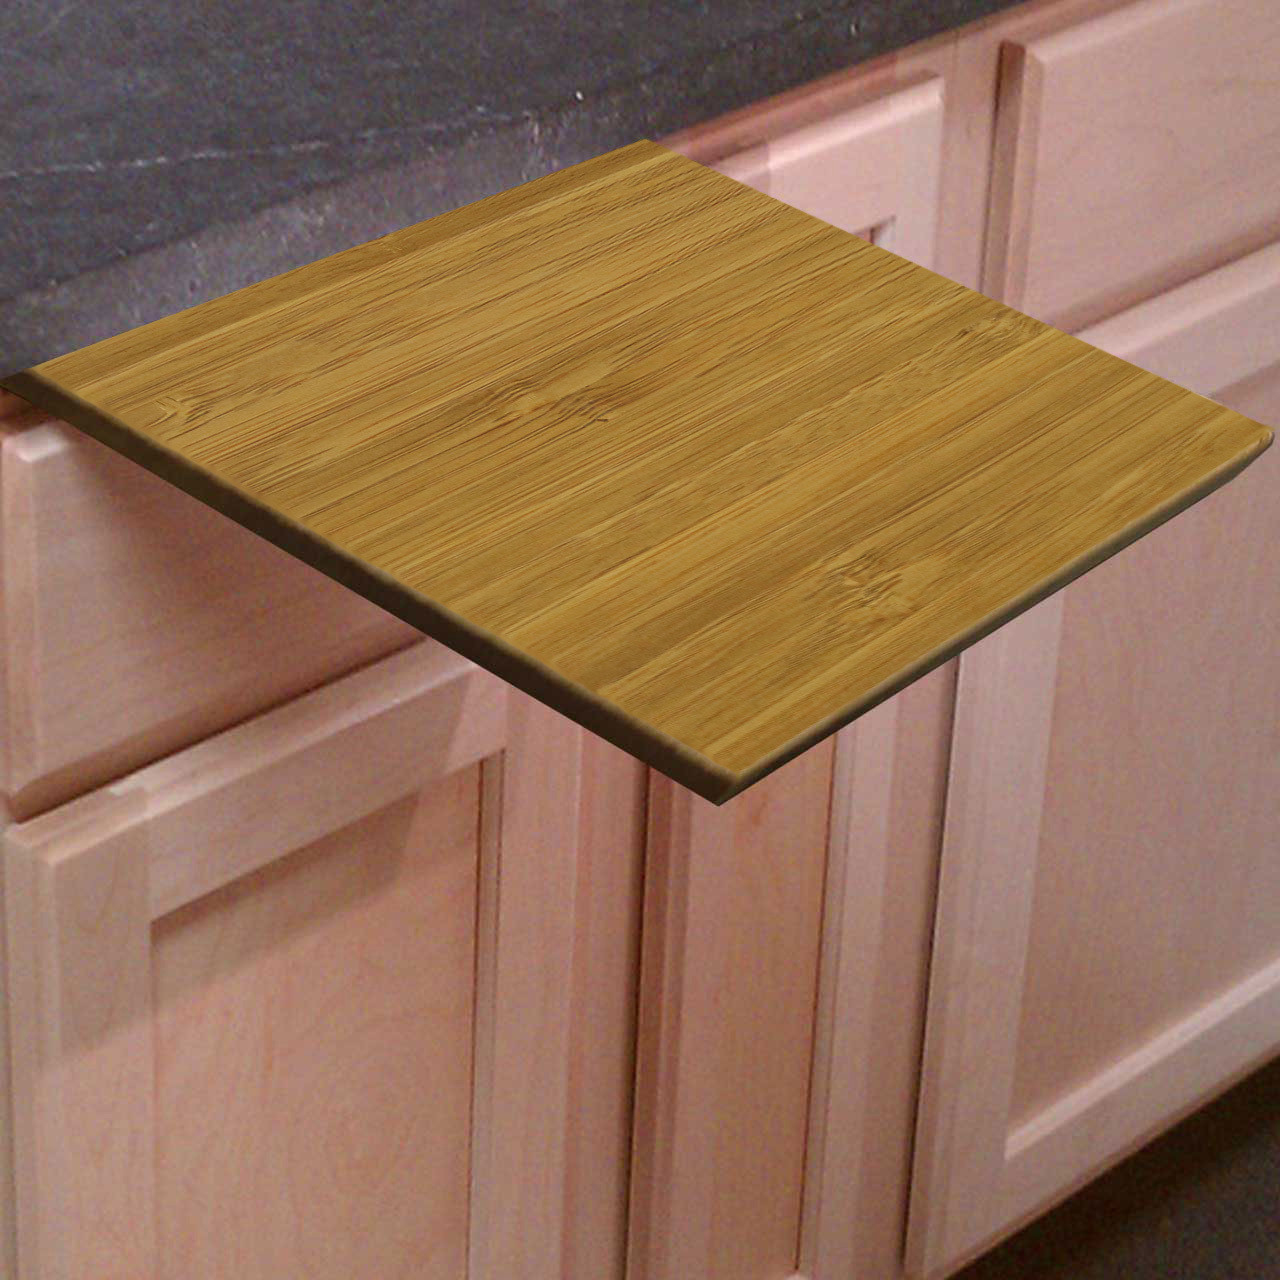 Fantastic Pull Out Amber Bamboo Cutting Board - 3/4 Inch Thick - Cutting  QF89